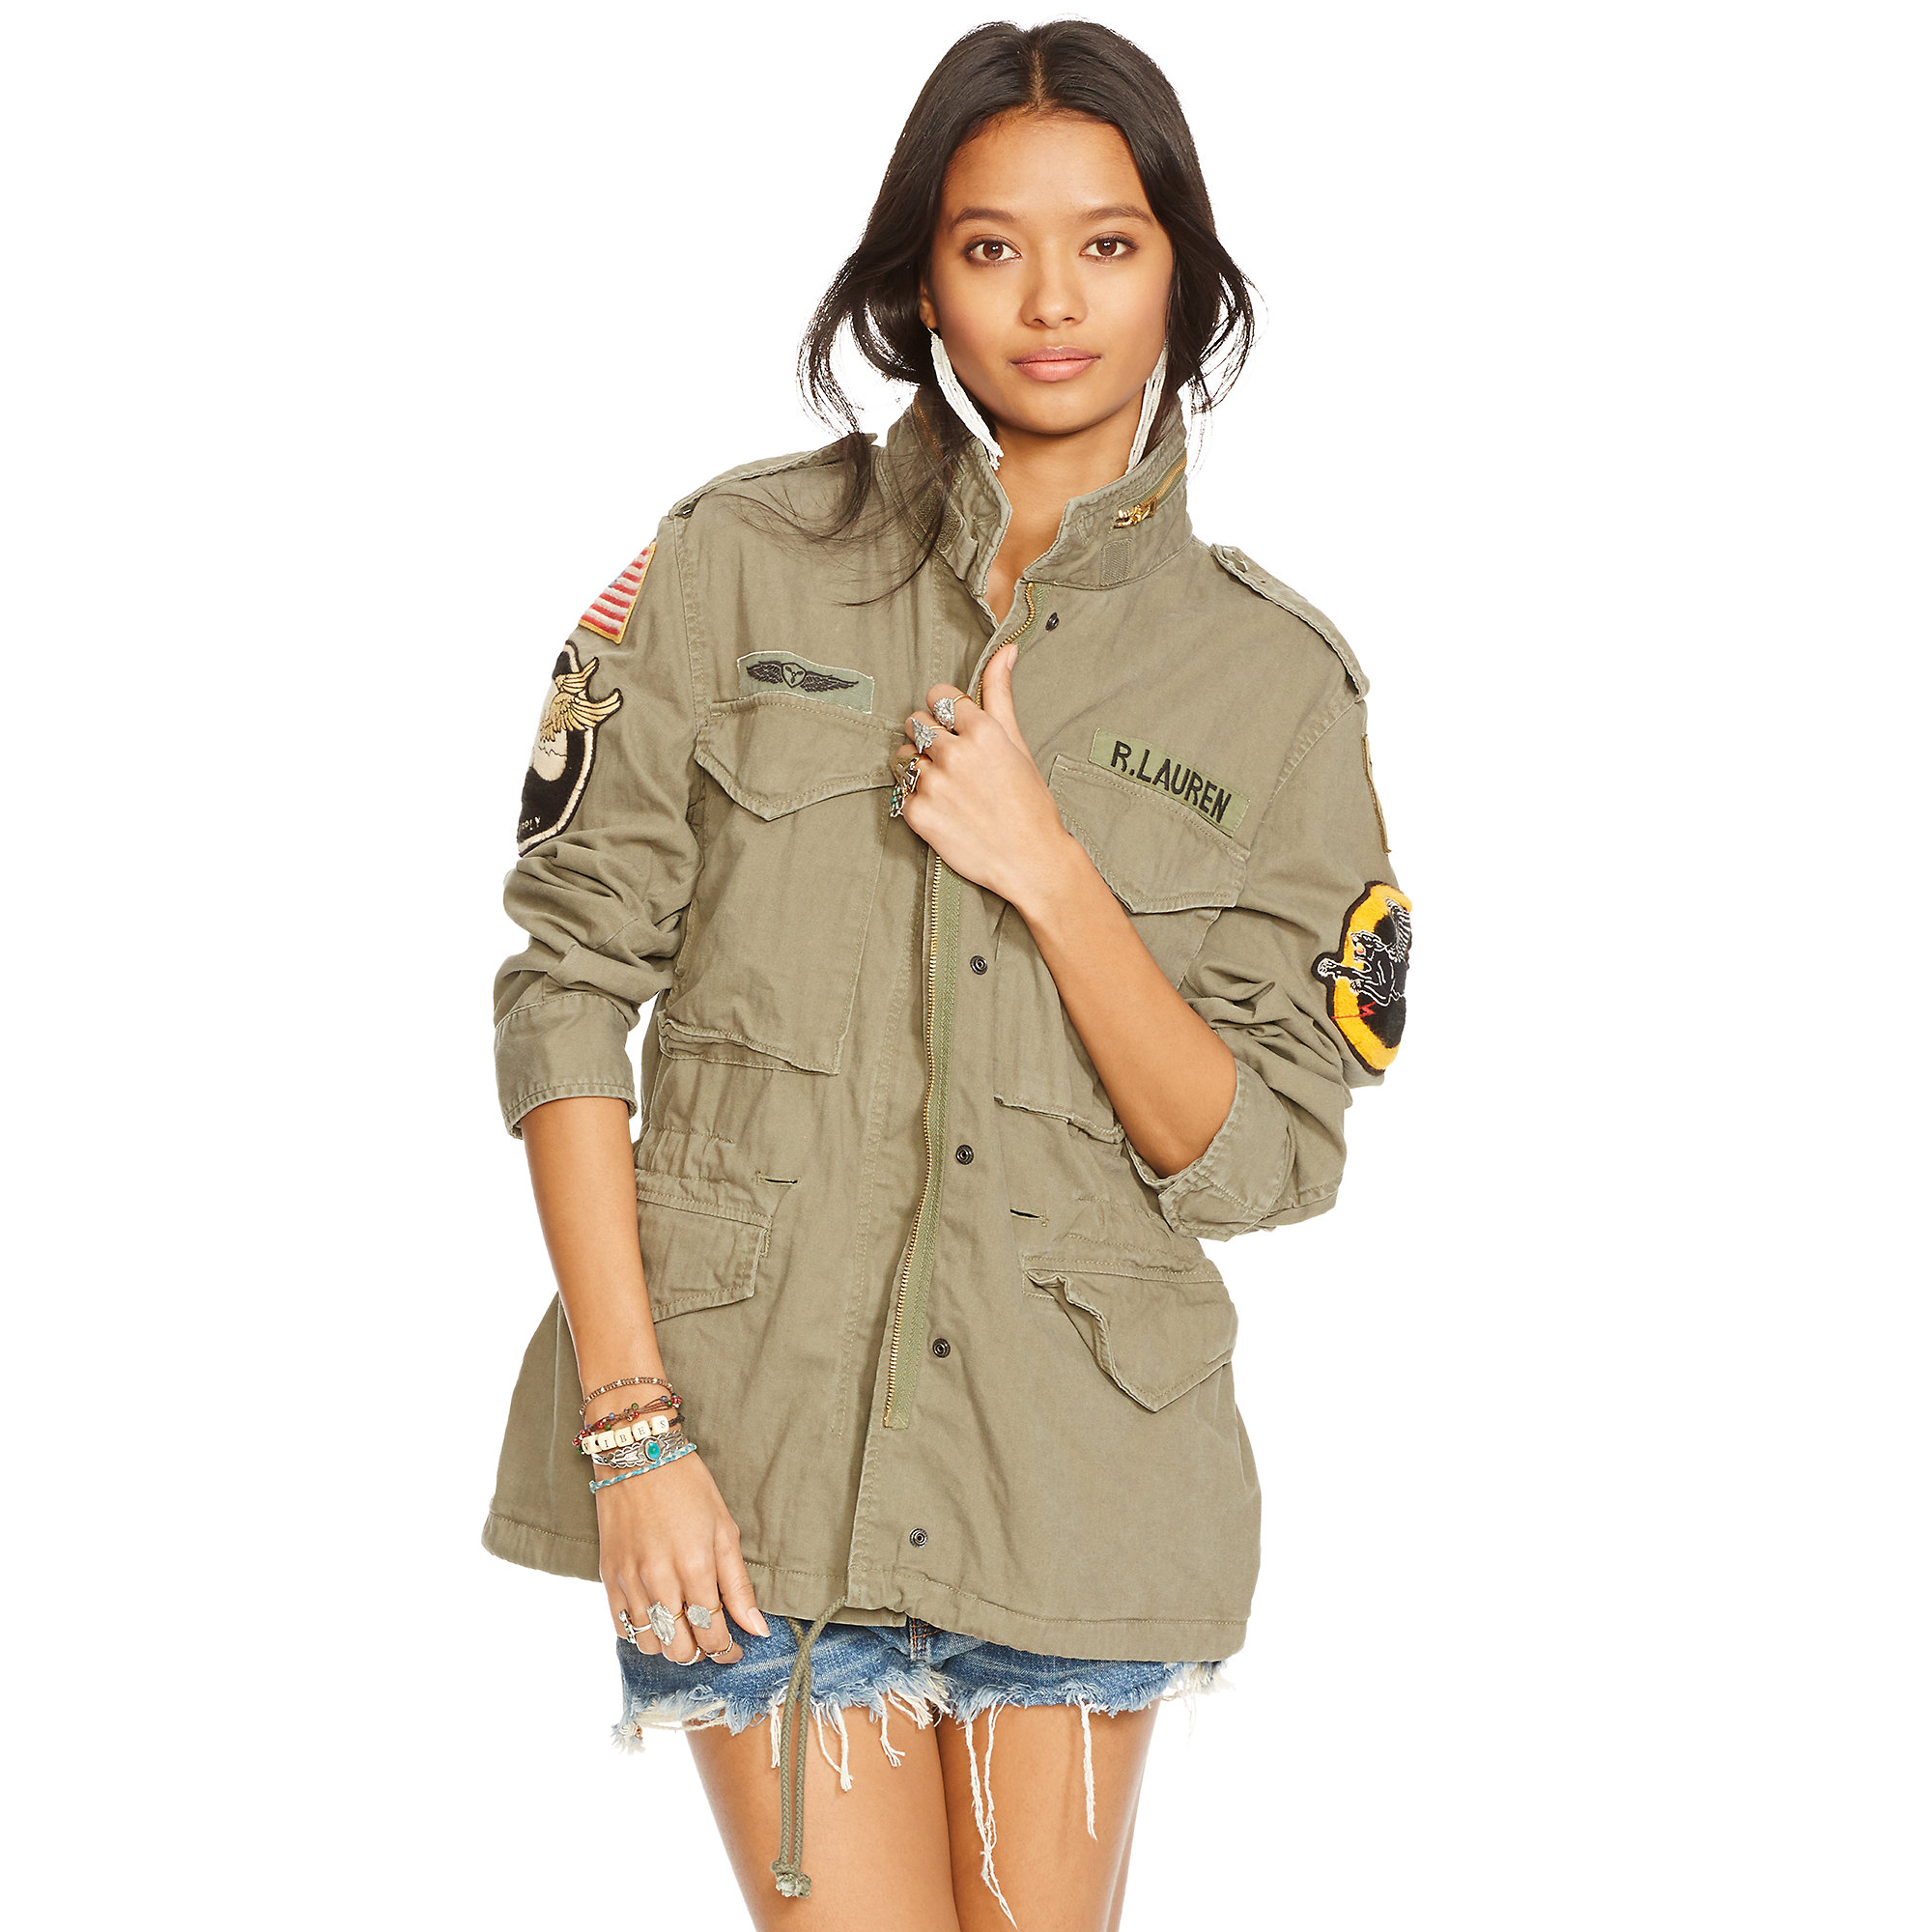 denim supply ralph lauren military patches field jacket in green. Black Bedroom Furniture Sets. Home Design Ideas